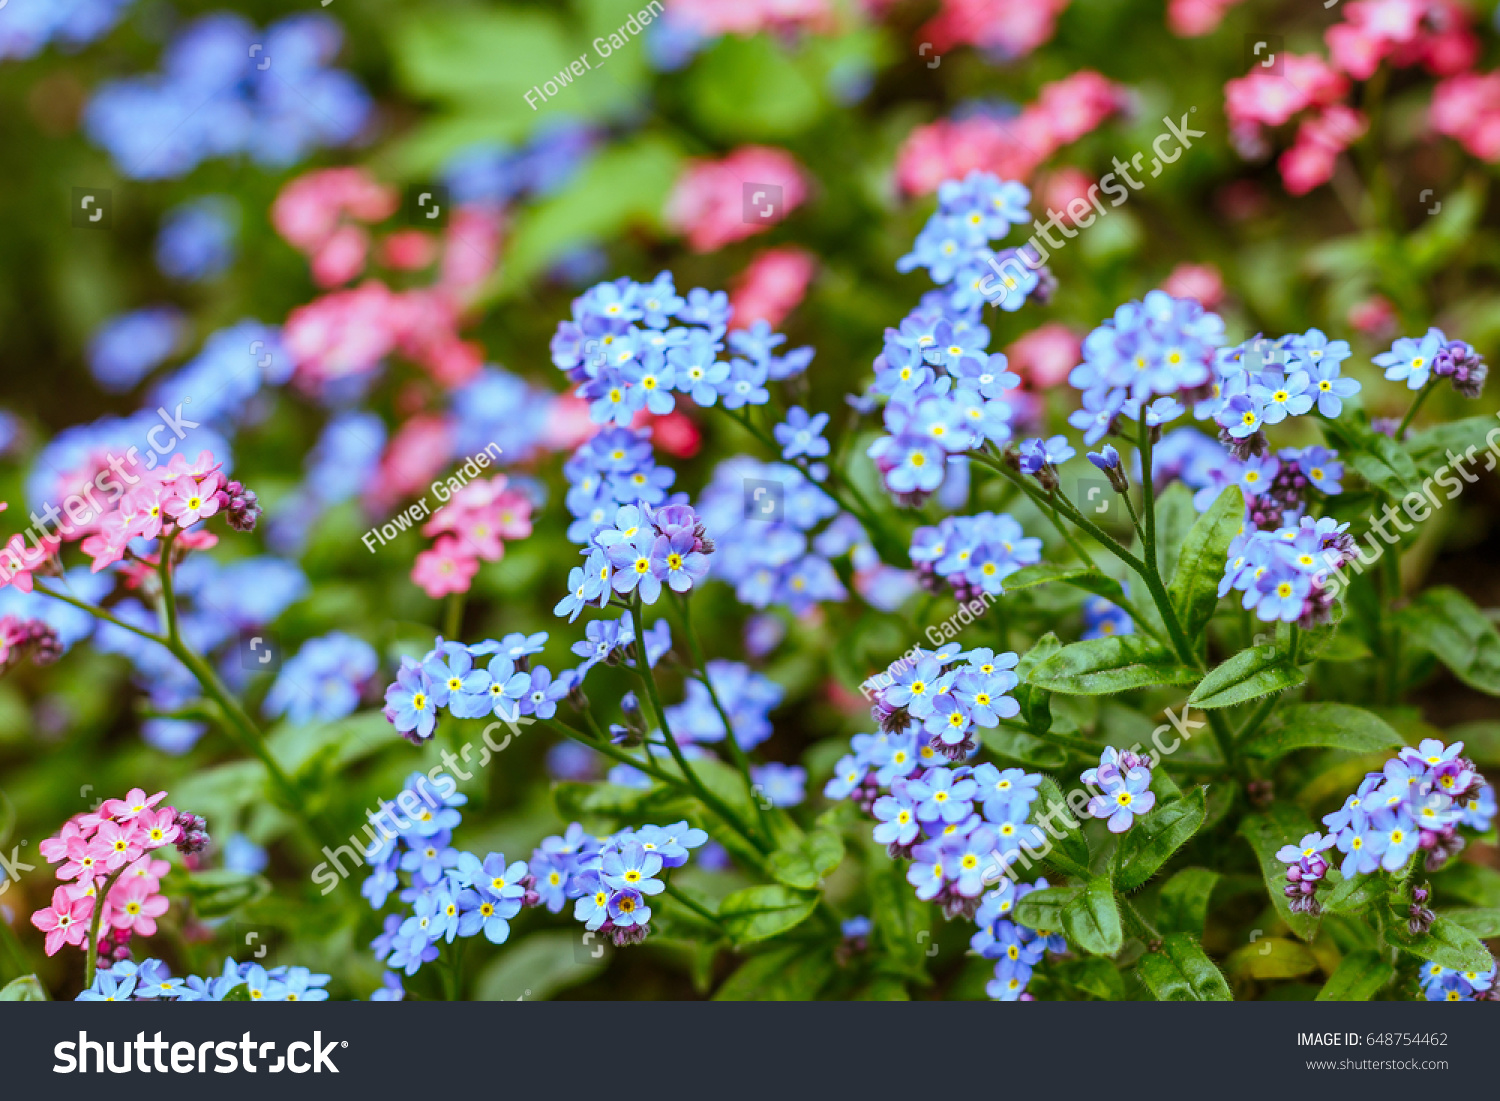 Myosotis sylvatica forget me not flowers in a garden shallow dof myosotis sylvatica forget me not flowers in a garden shallow dof ez canvas mightylinksfo